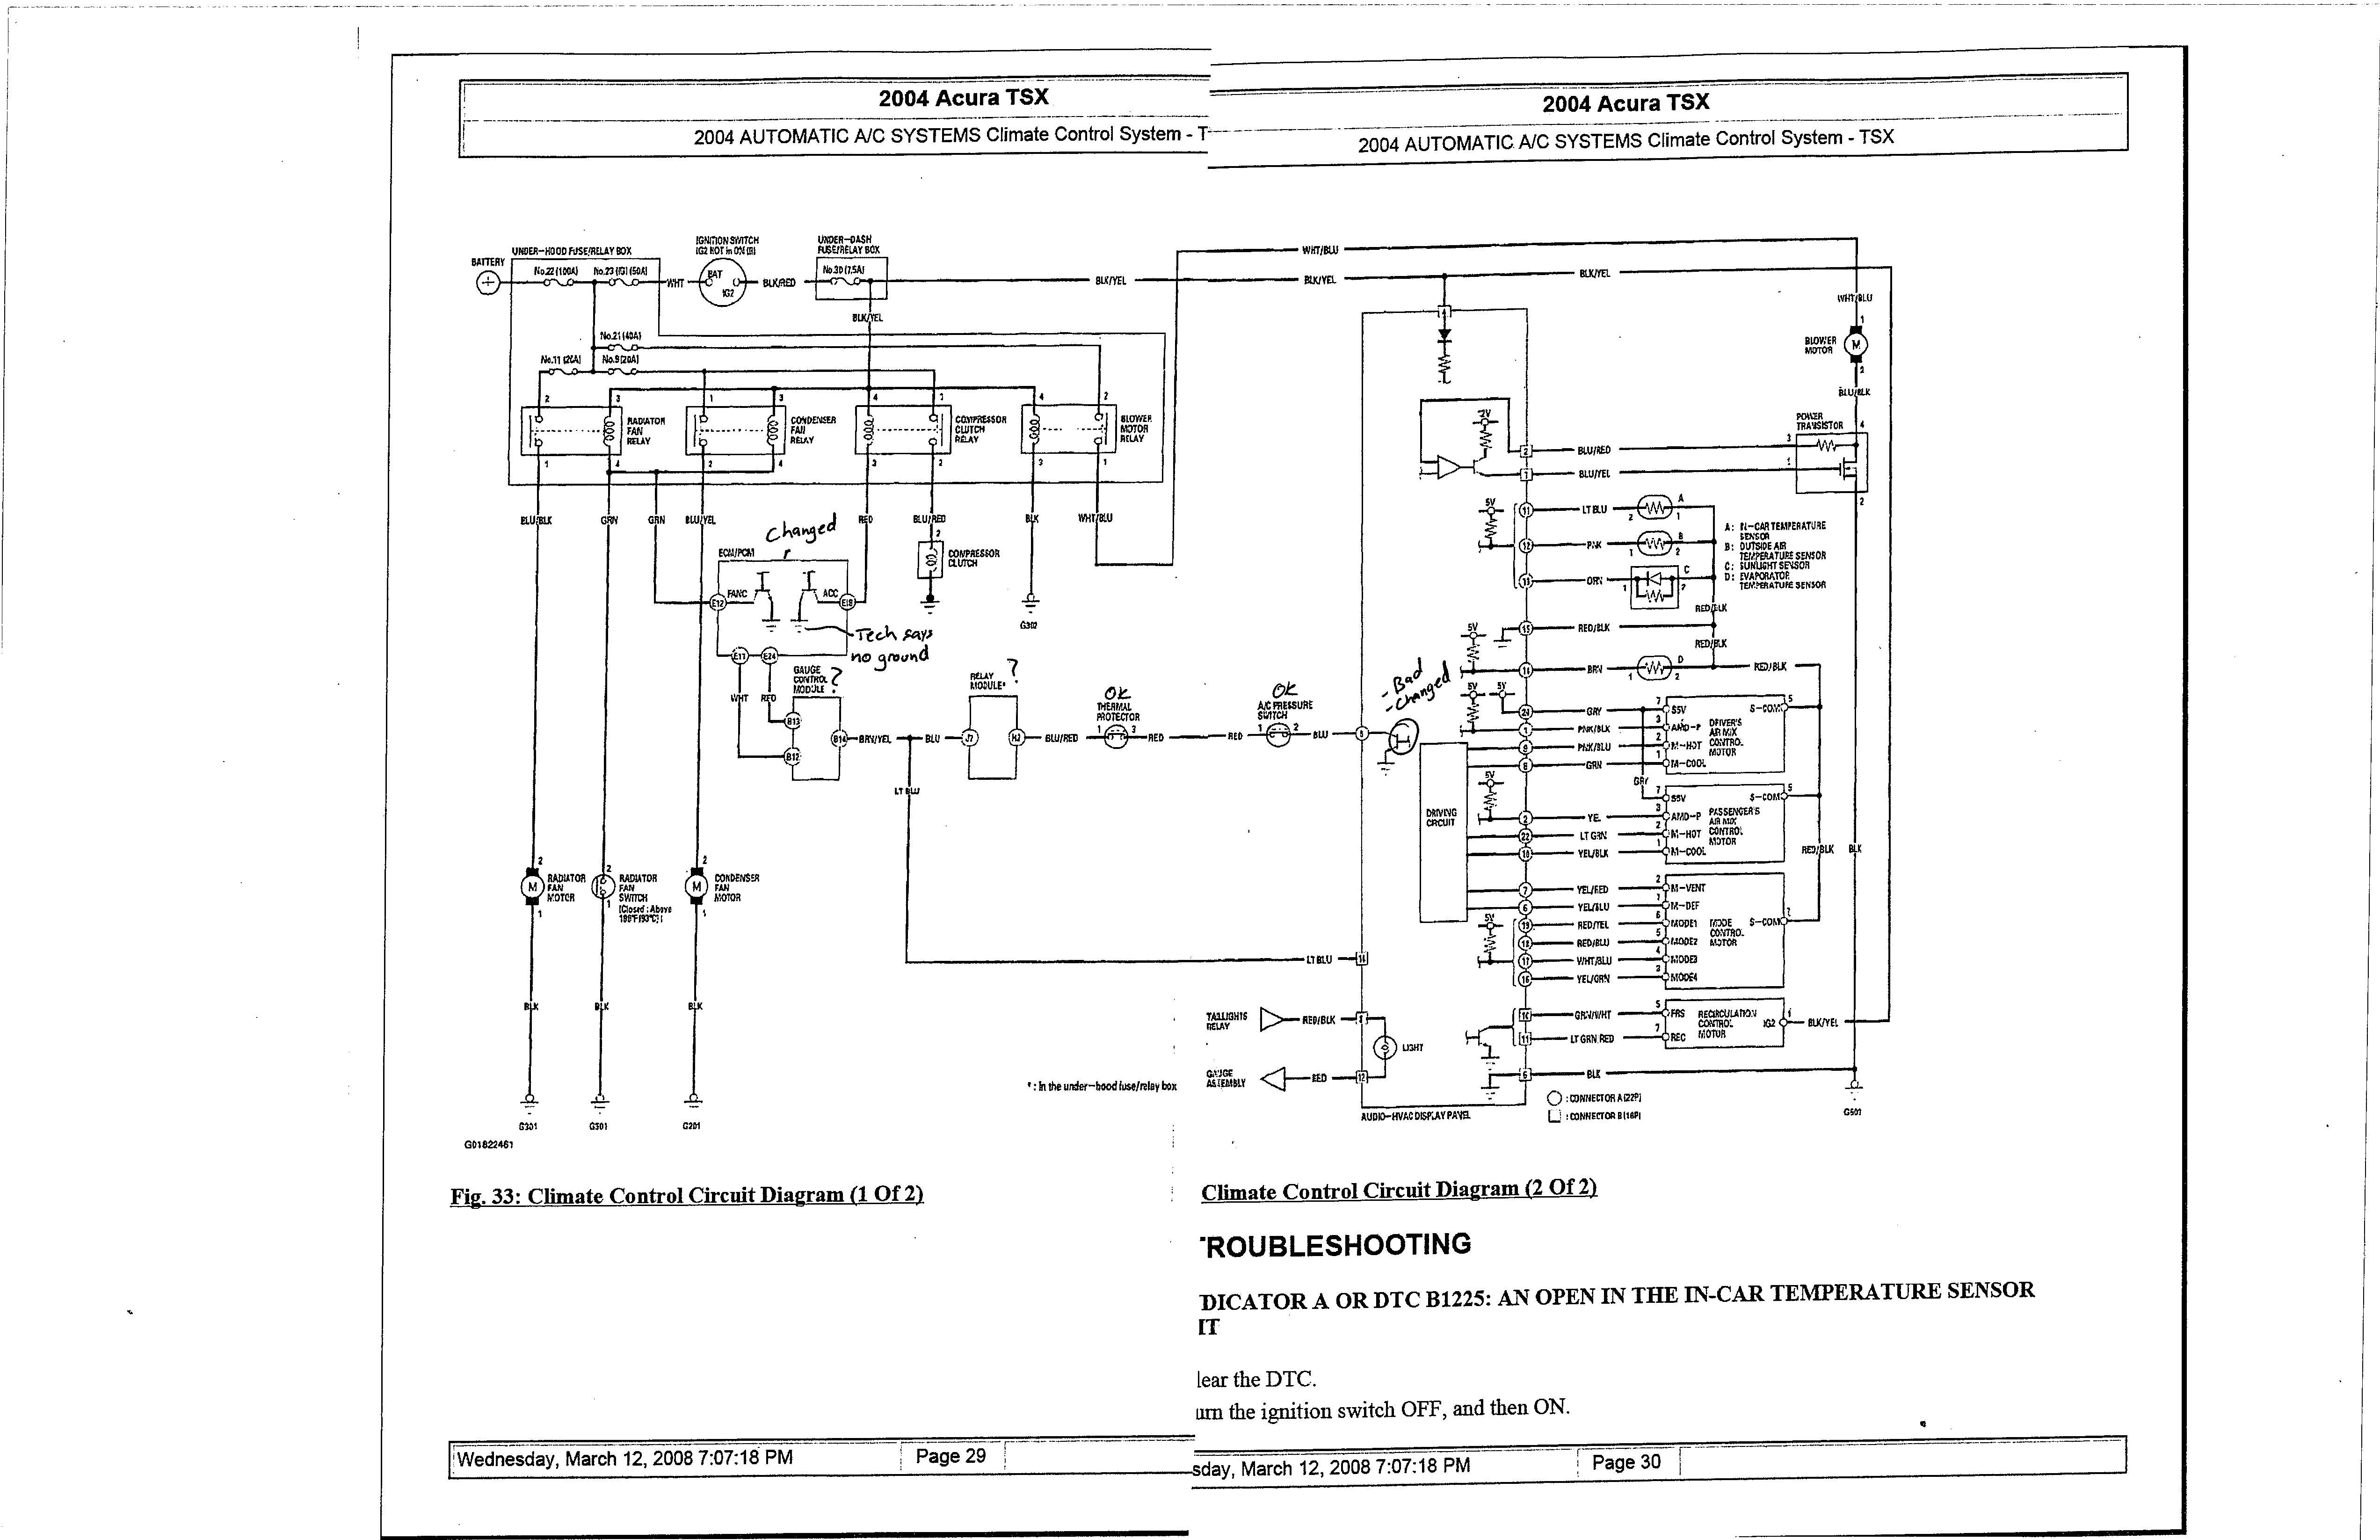 Wiring Diagram For 2004 Acura Tsx Hp Photosmart Printer